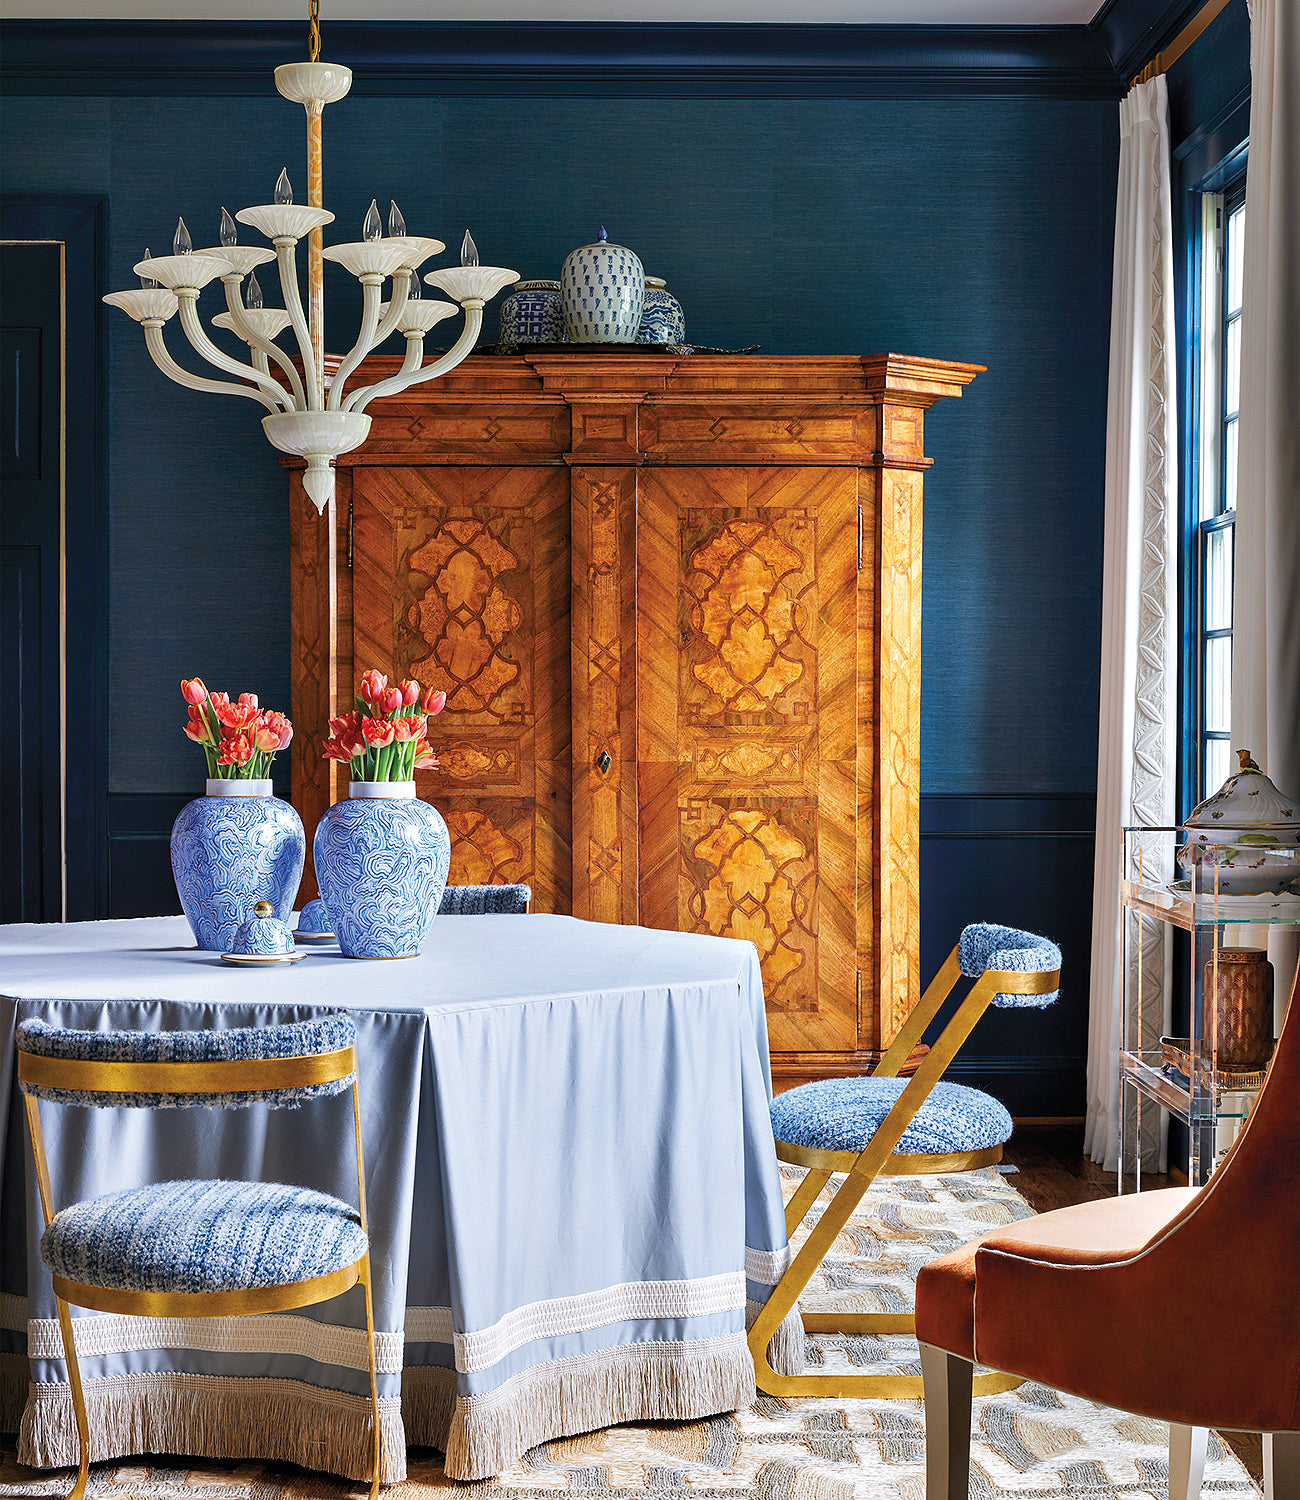 A living room wall painted in Hague Blue/Photographer: Matt Harrington/Designer Blaire Murfree opted for Hague Blue as a complement to a burl-wood armoire and midcentury modern brass chairs in this dining room.